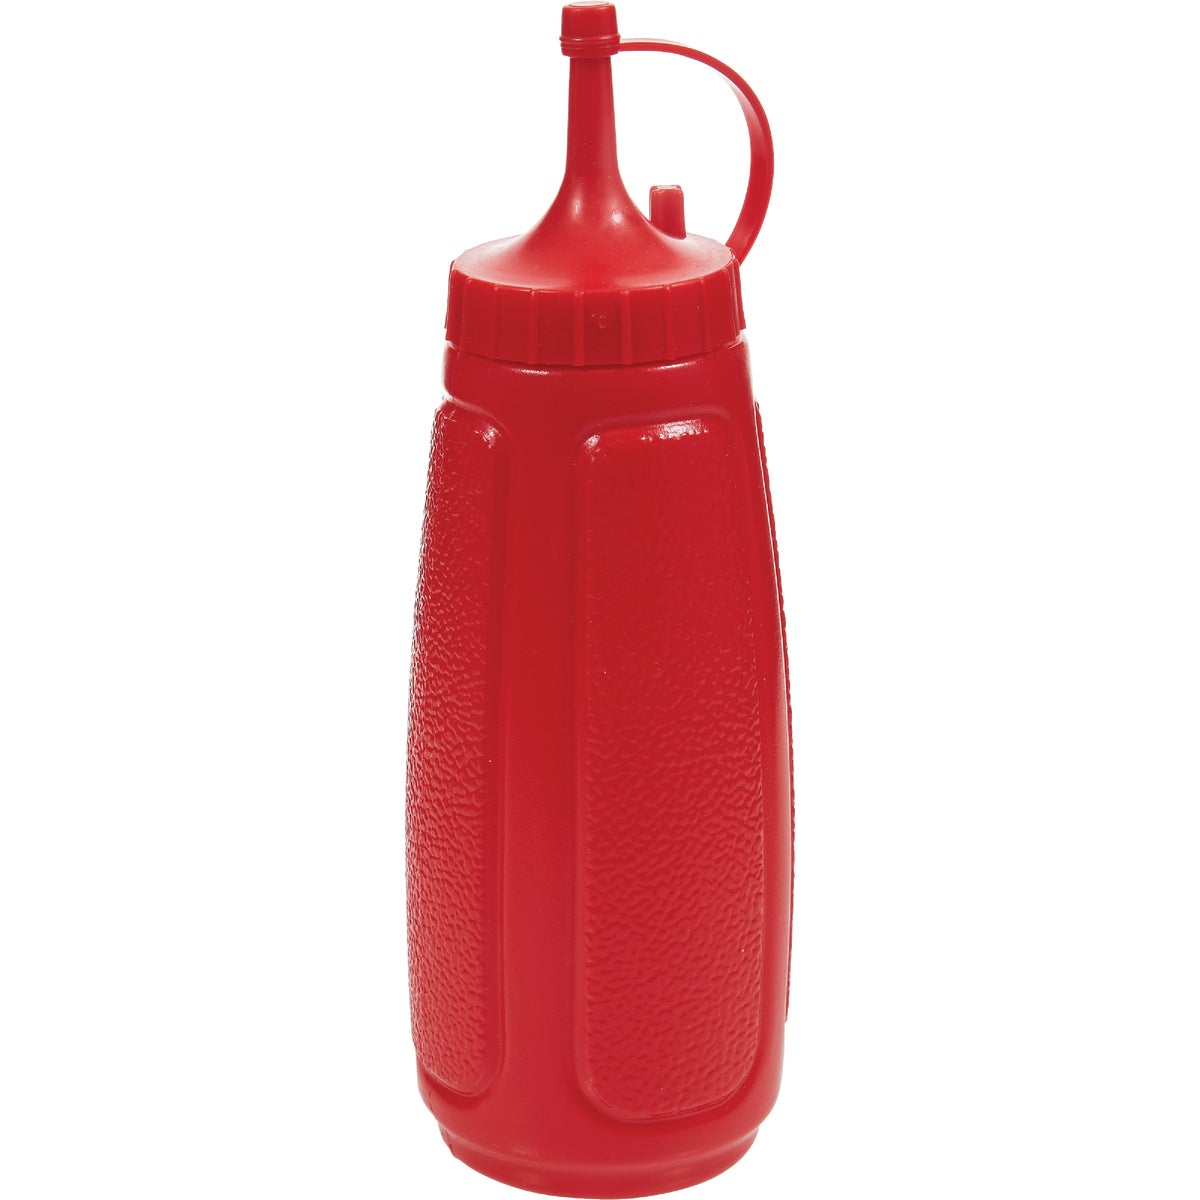 KETCHUP DISPENSER - 00065 by Arrow Plastic Mfg Co